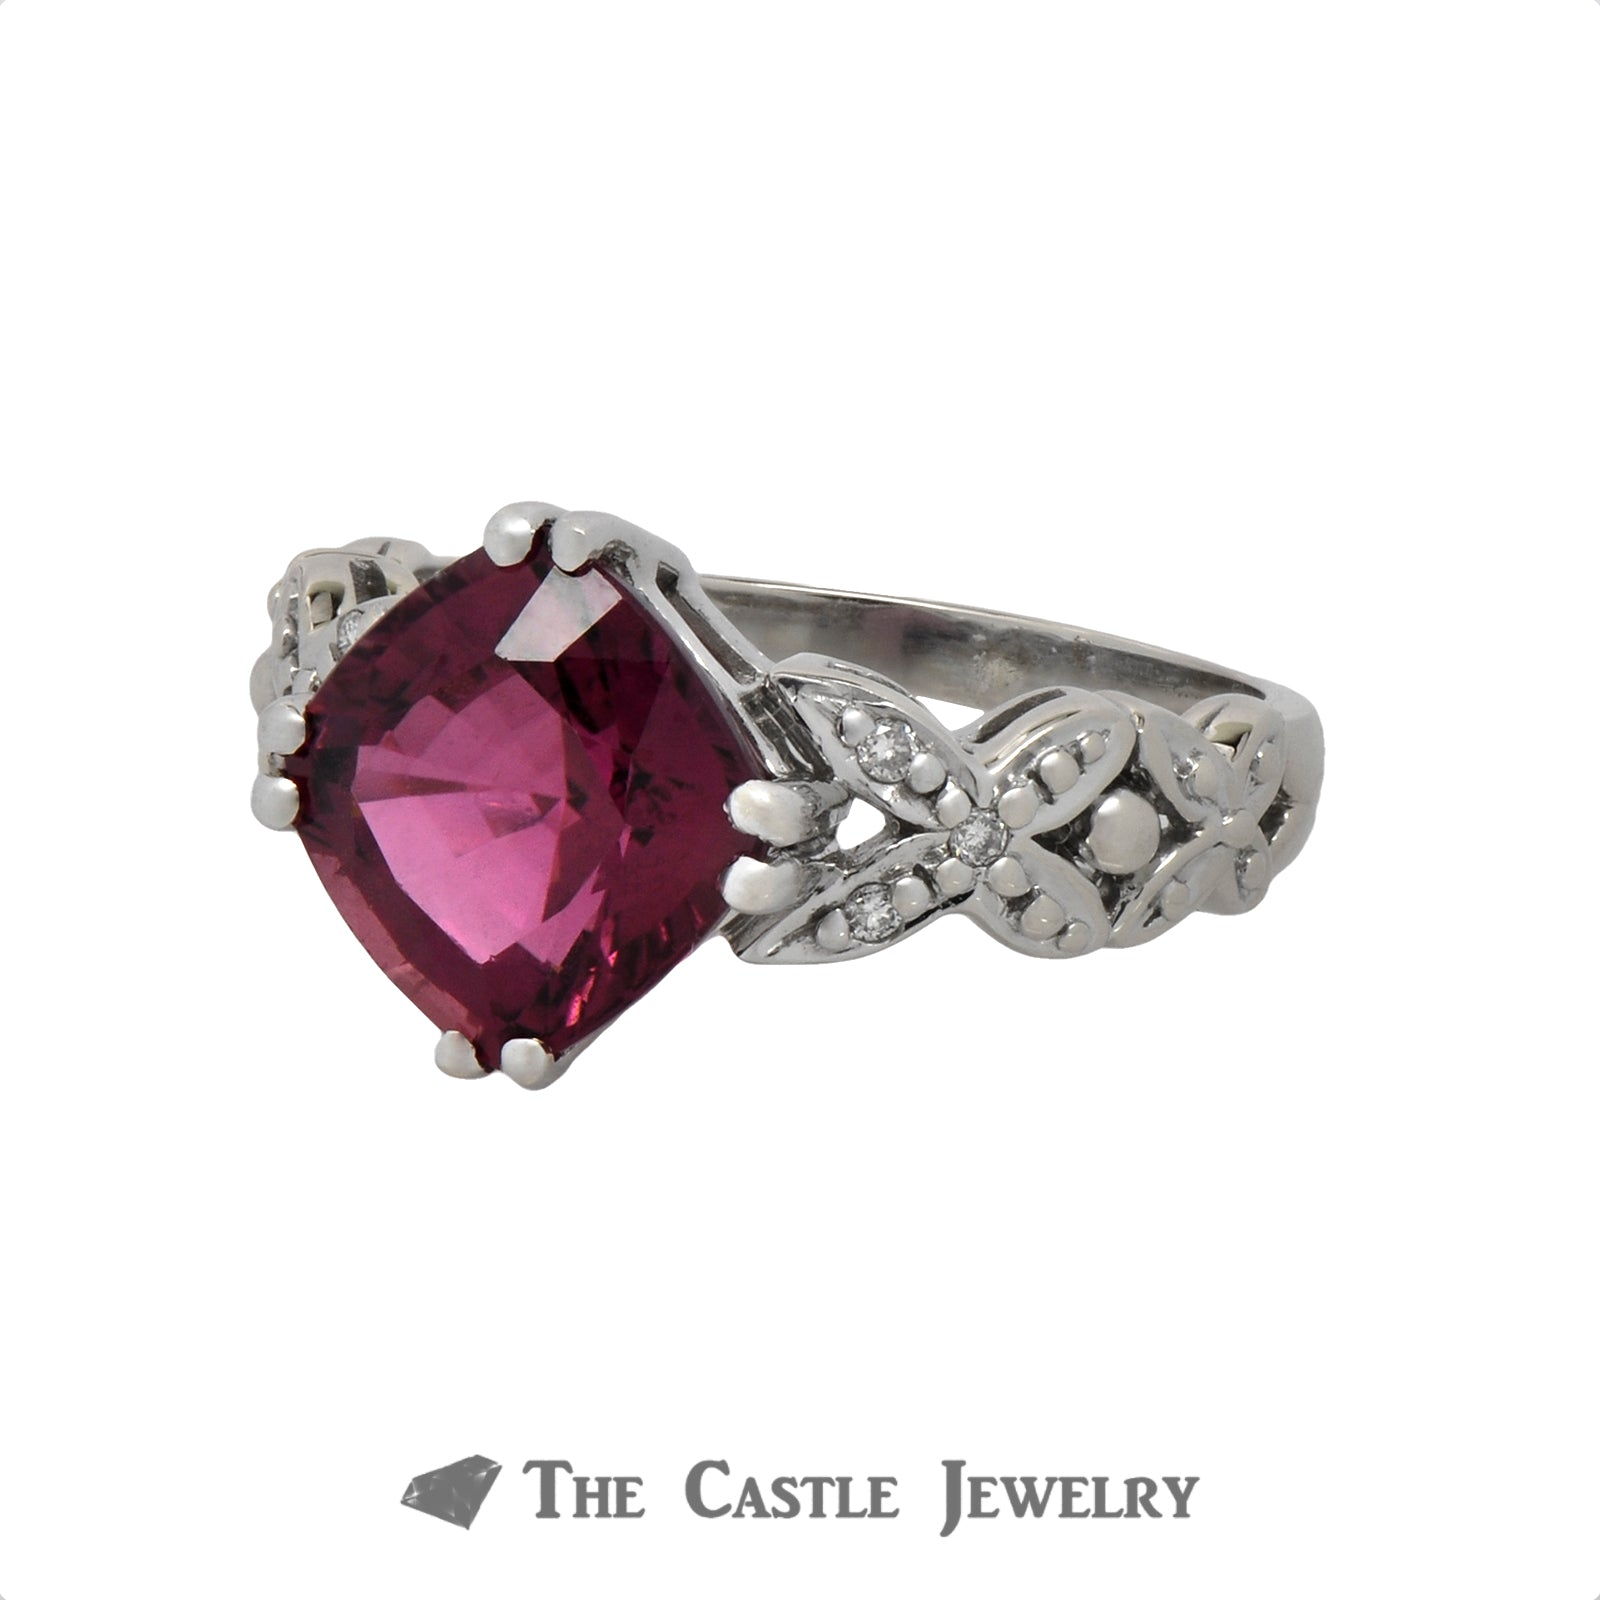 Cushion Cut Rhodolite Garnet ring with .06cttw Diamond Accents in 14k White Gold